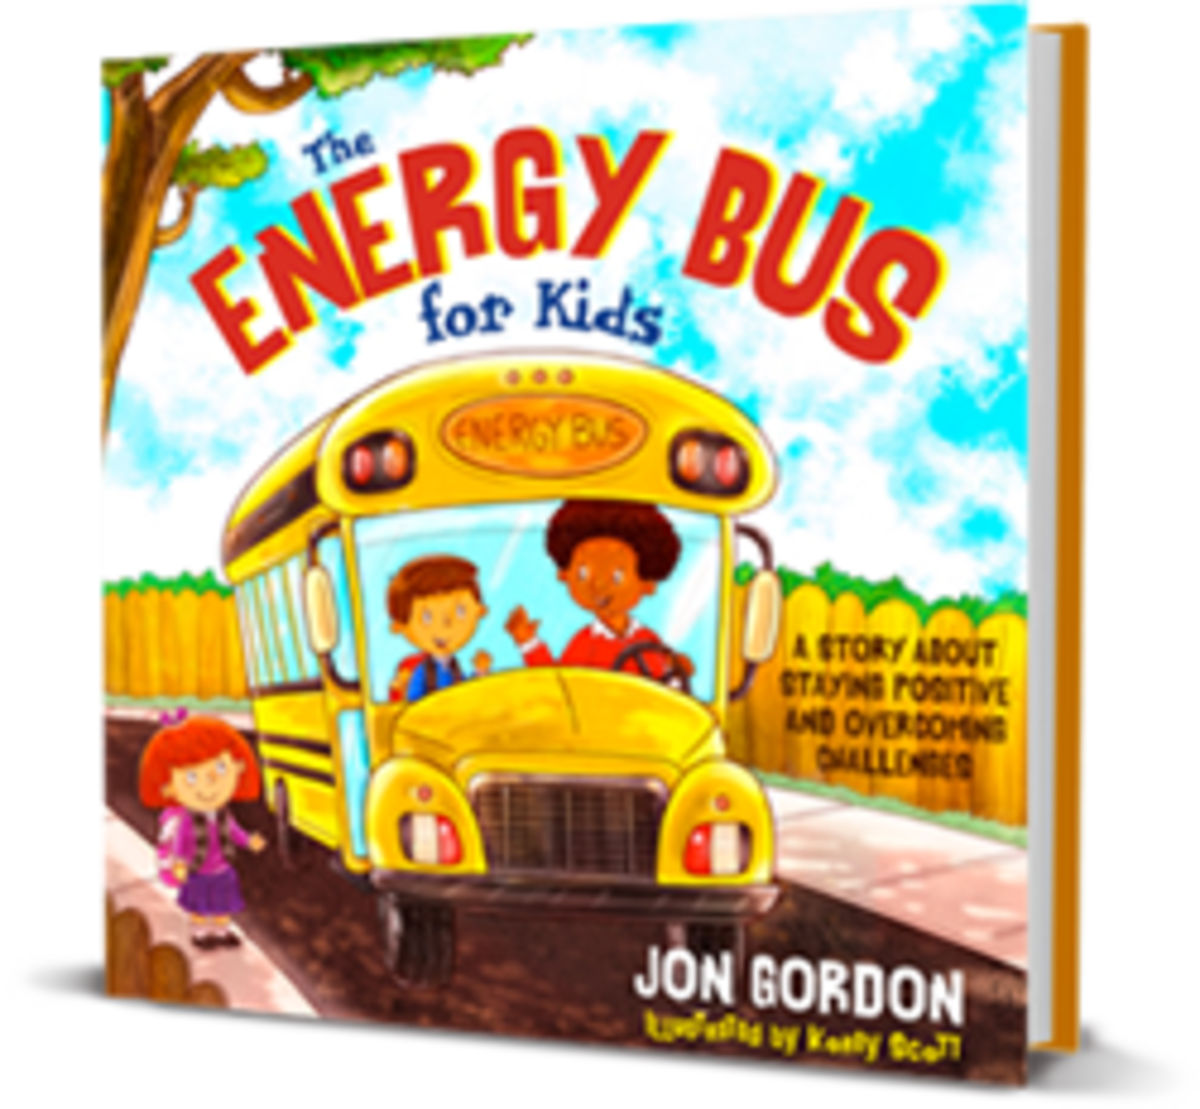 The Energy Bus for Kids, The Energy Bus for Kids review